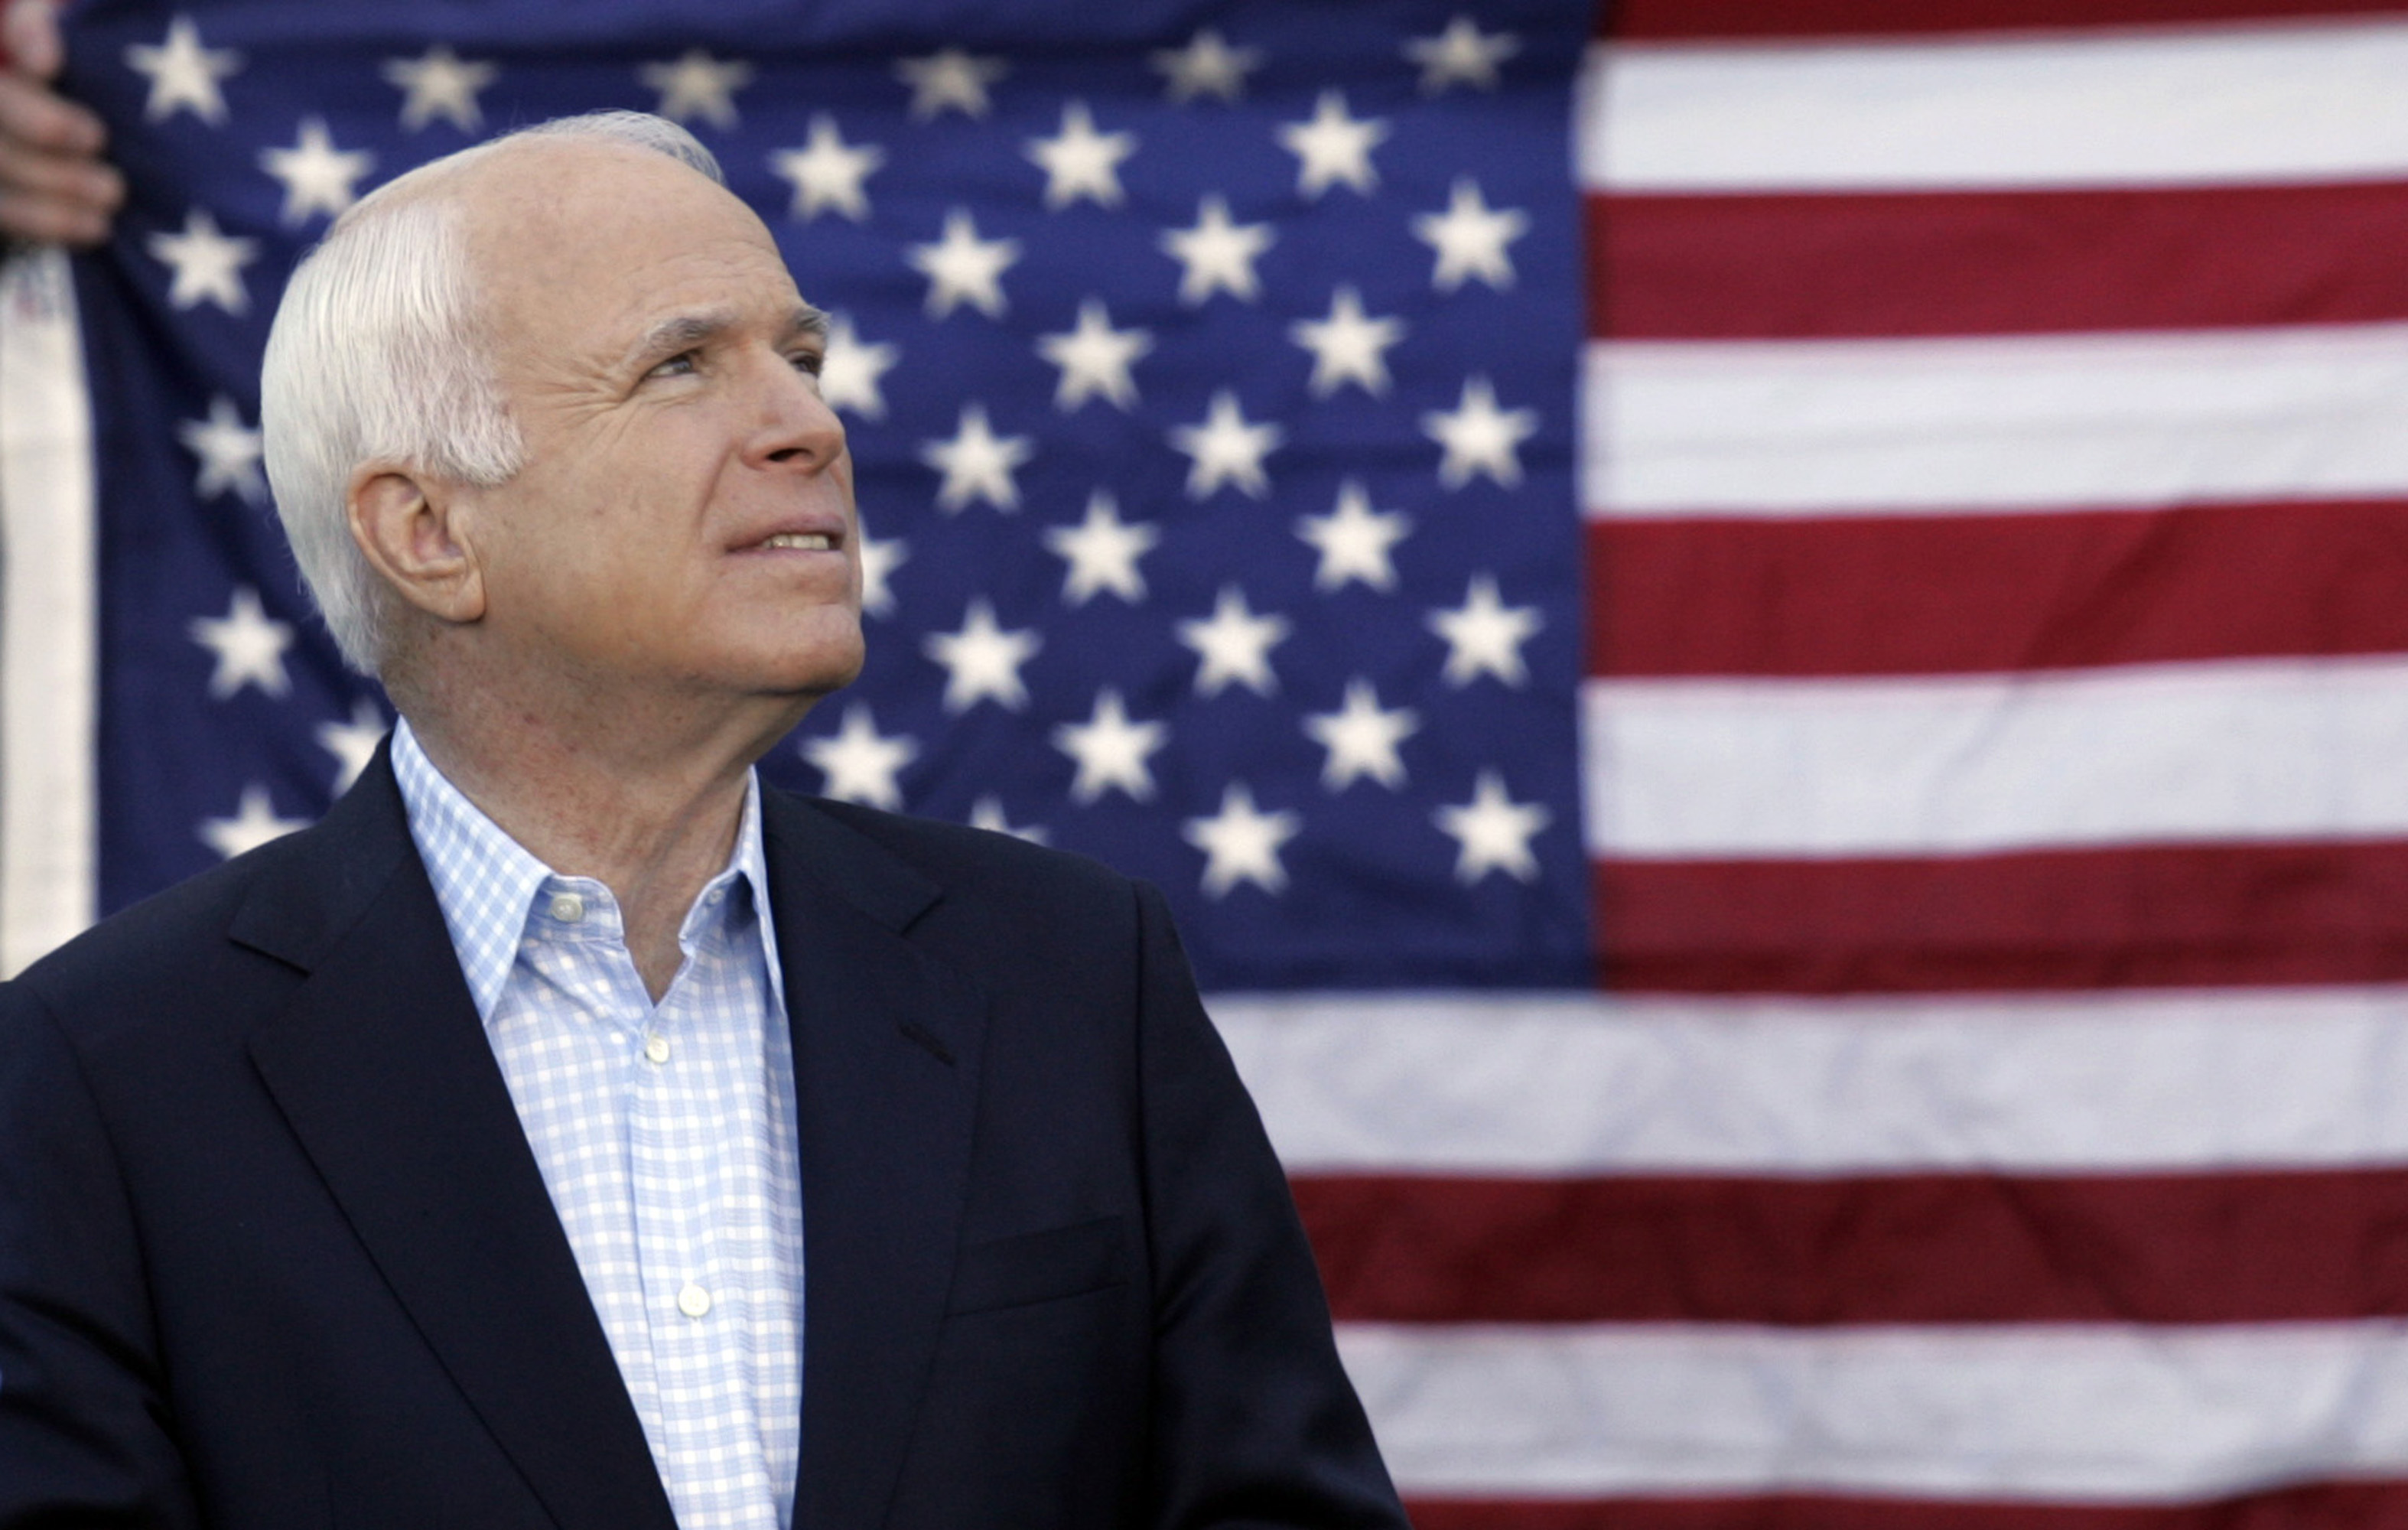 Republican presidential candidate Sen. John McCain looks up during a rally at the Christopher Newport University in Newport News, Virginia on Saturday...